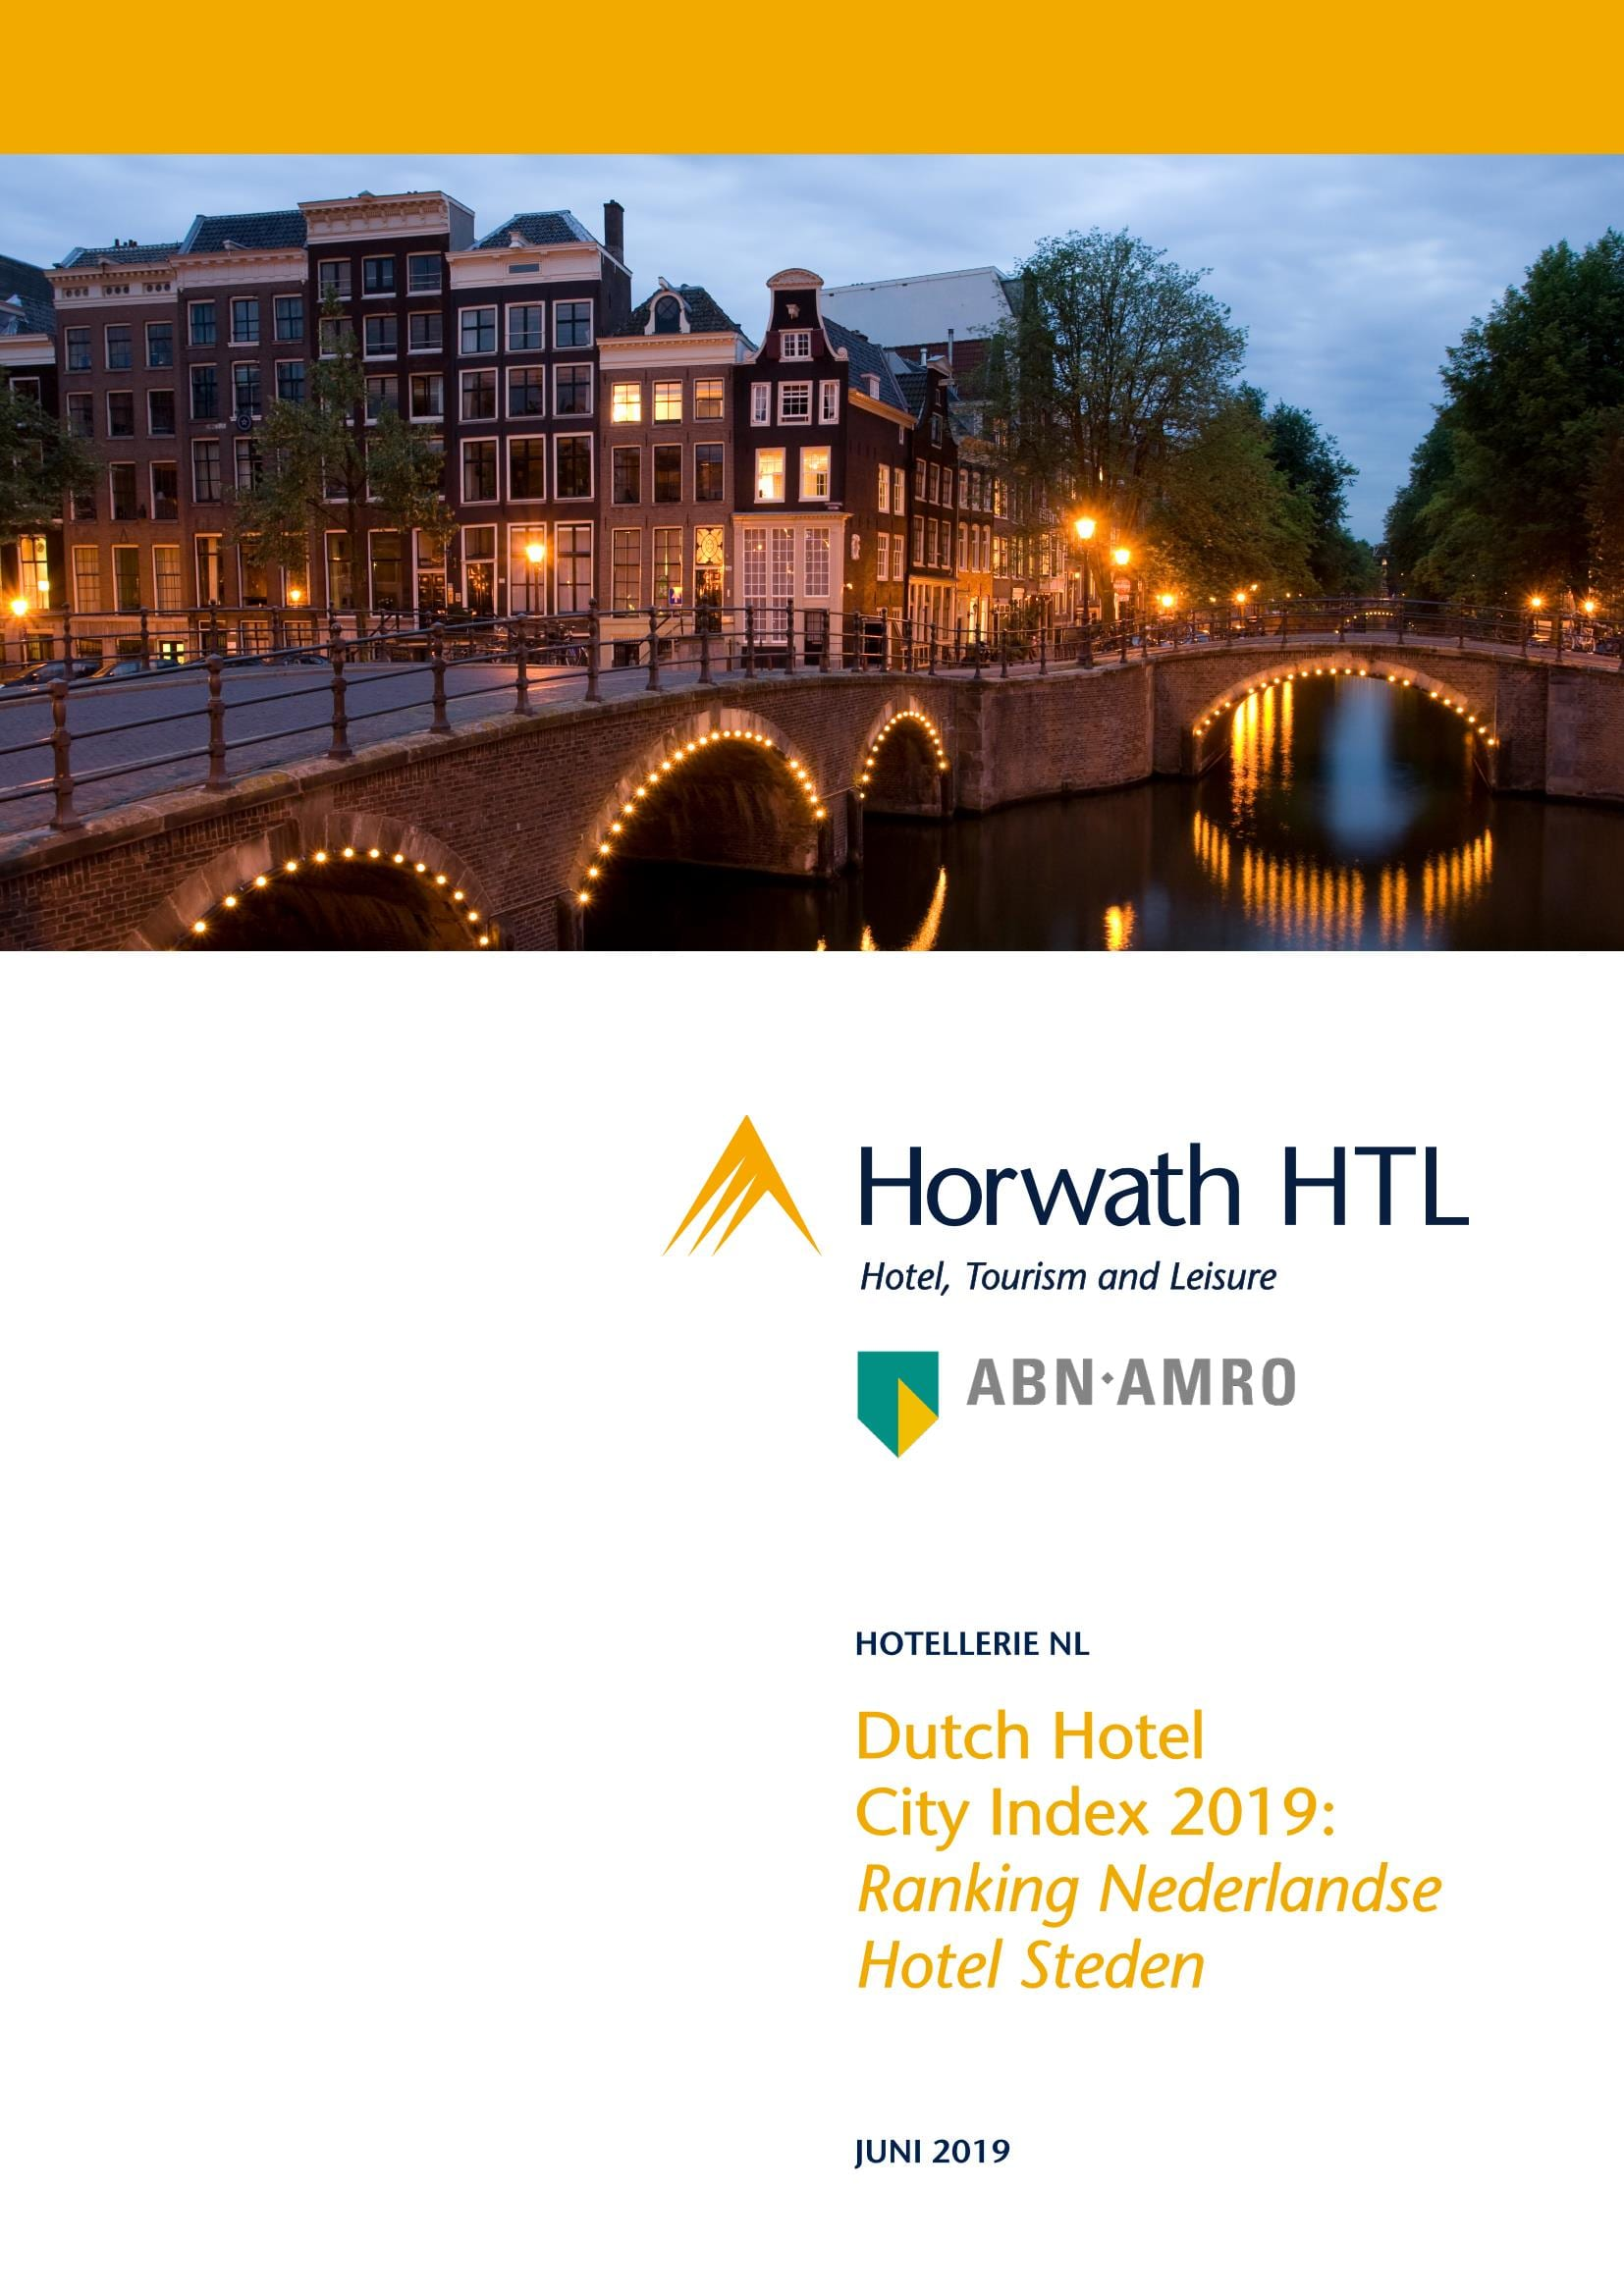 Market Report: Dutch Hotel City Index 2019